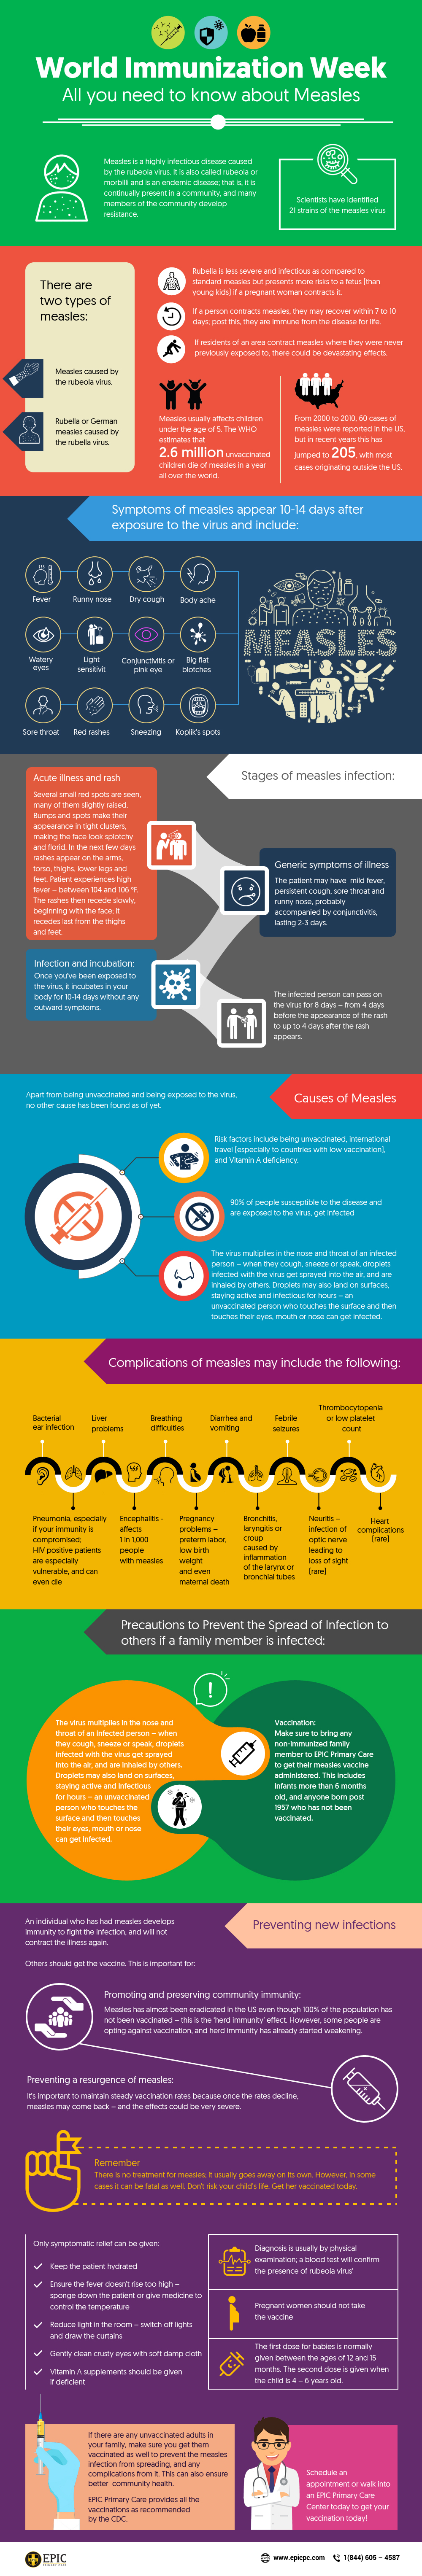 World Immunization Week: All You Need to Know About Measles – Infographic